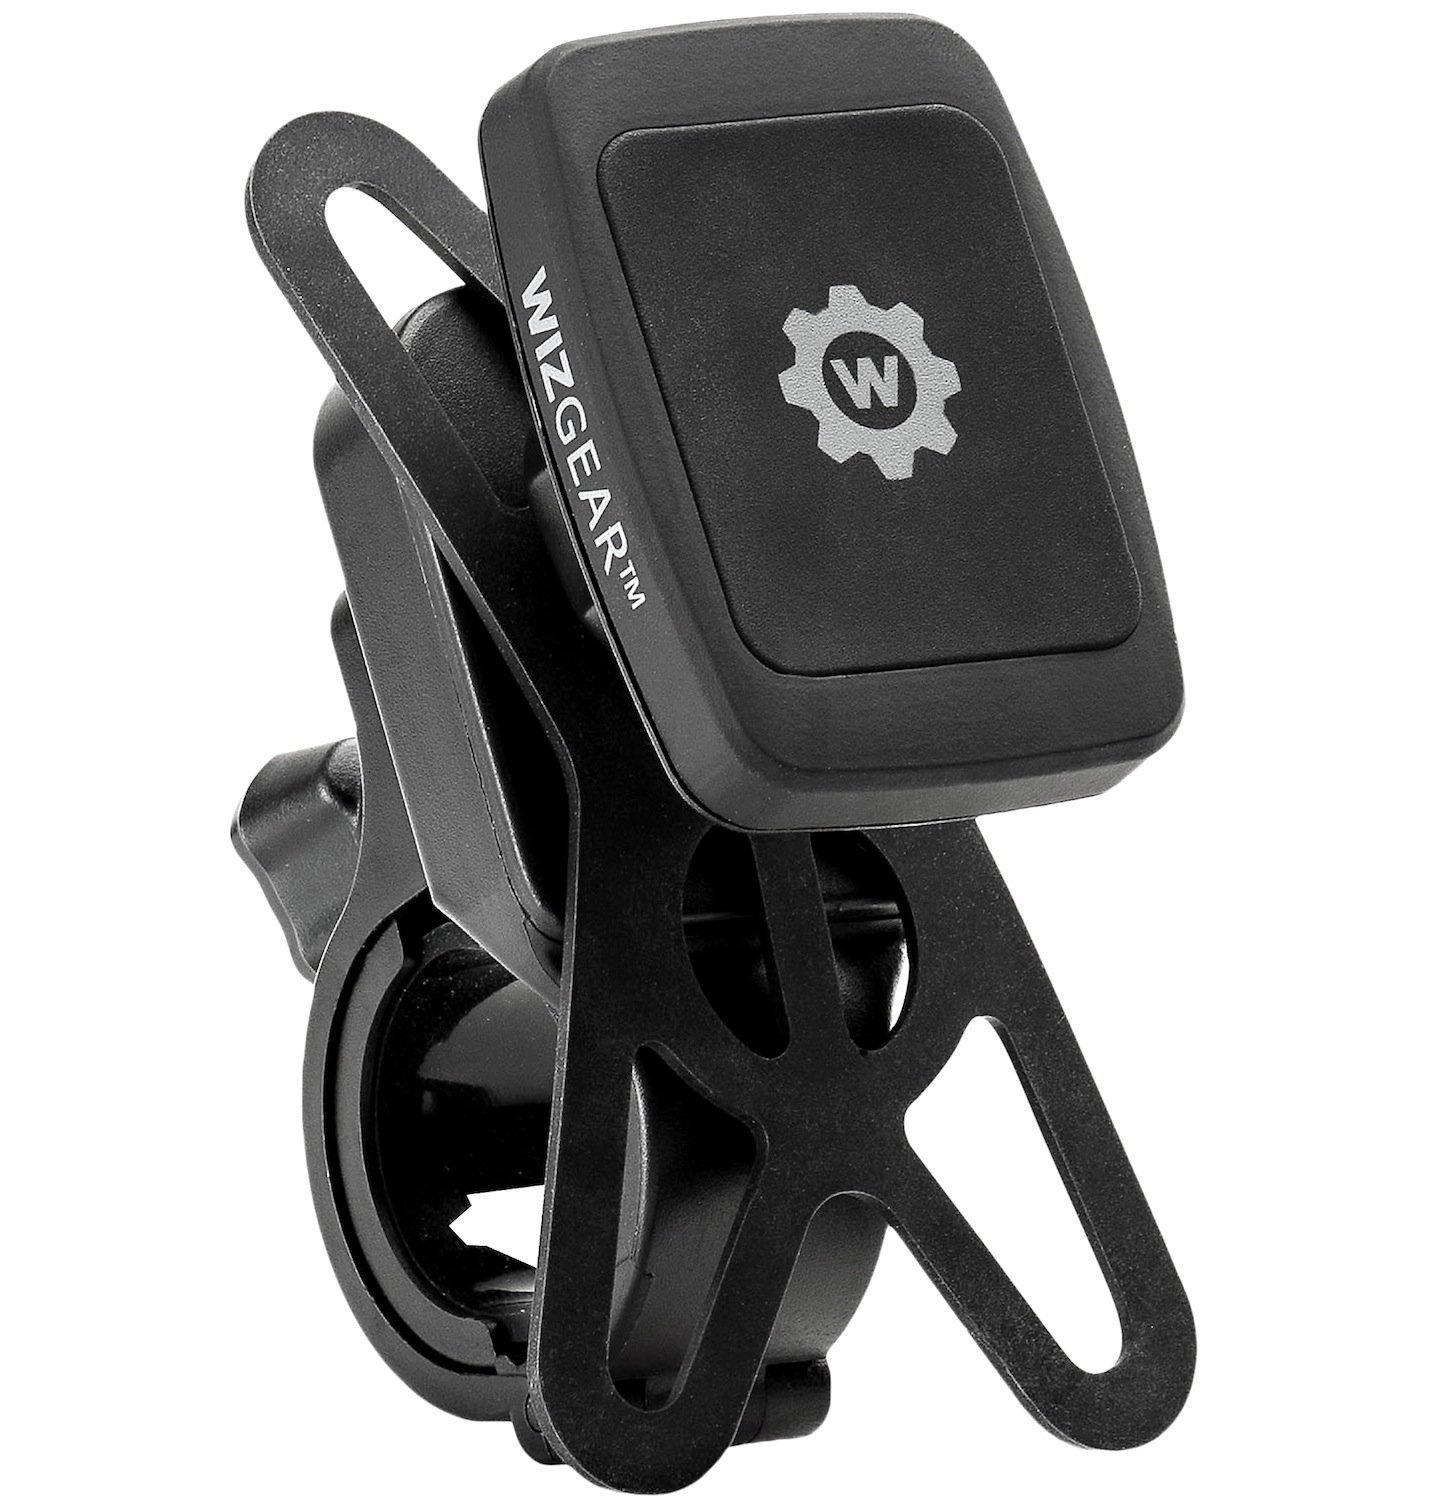 Magnetic Magnetic Bike Mount WizGear Universal Magnetic Bicycle /& Motorcycle Handlebar Phone Holder for Cell Phones and GPS with Fast Swift-Snap Technology Magnetic Bike Phone Holder Bike Phone Holder